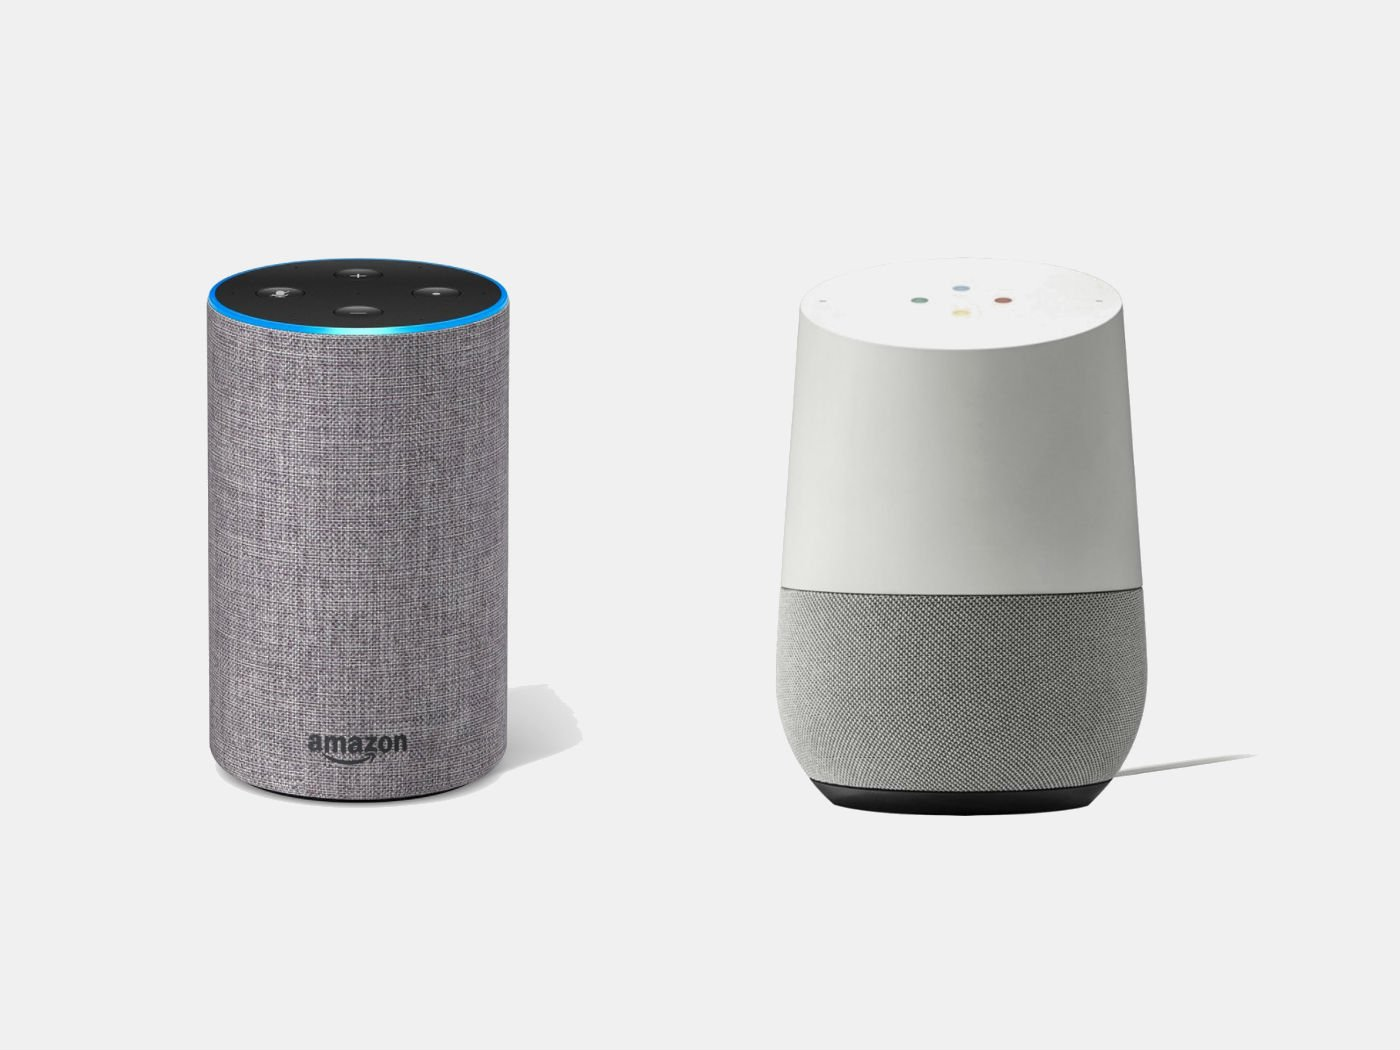 Google Home and Echo Together